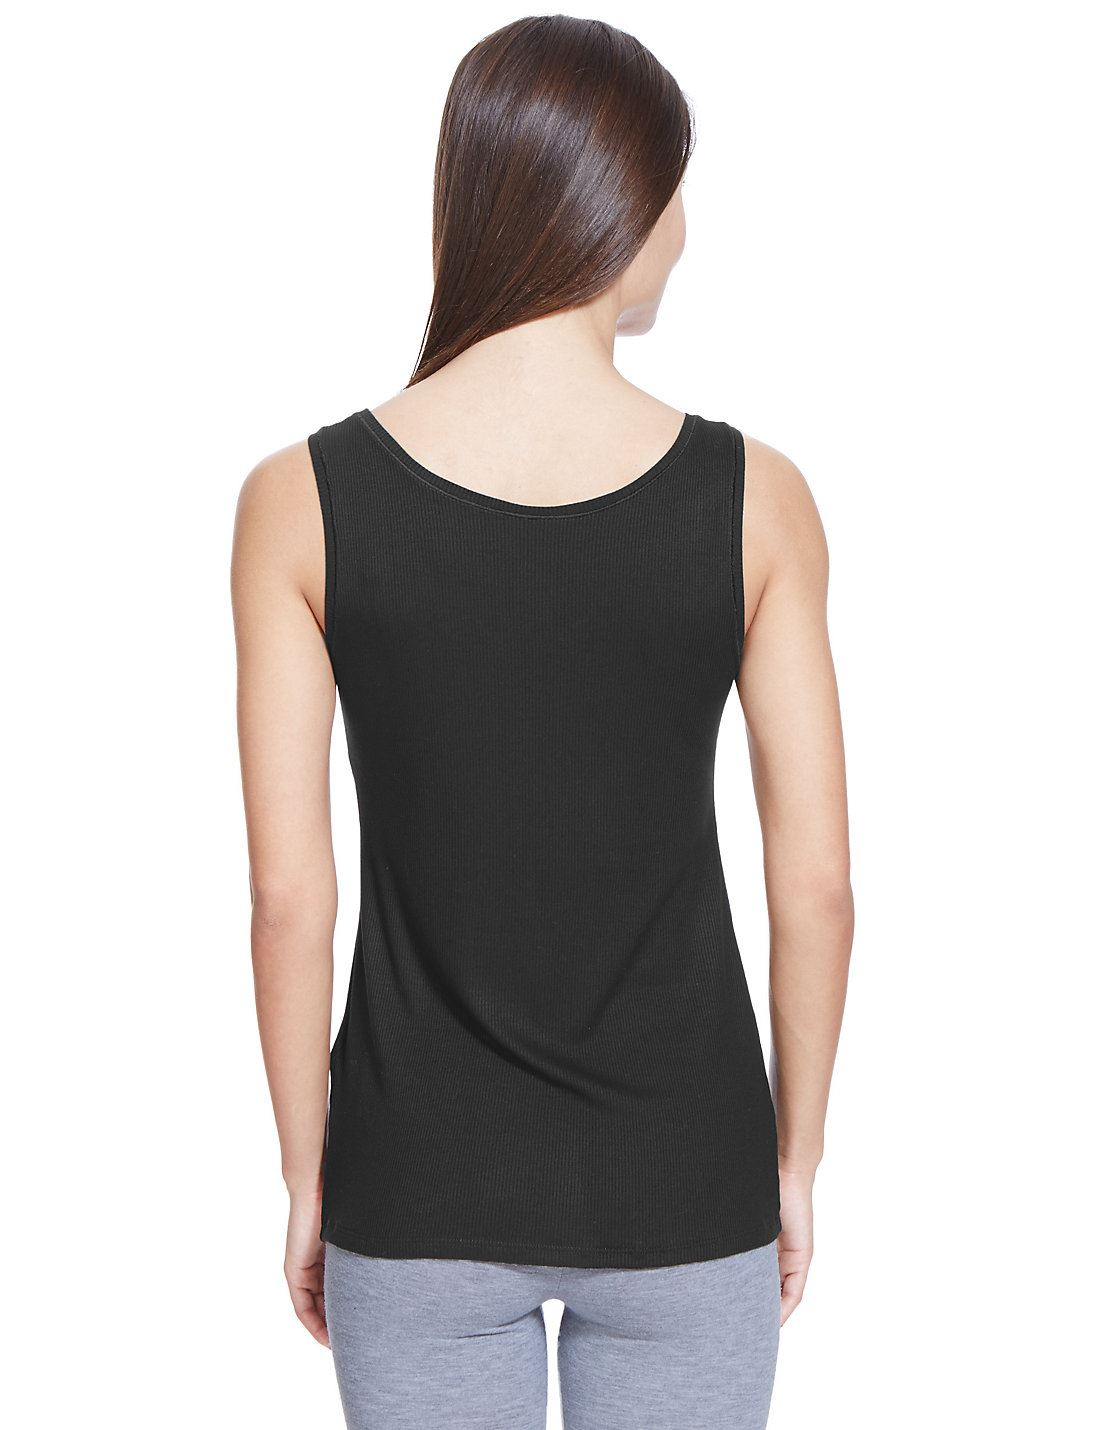 EX-M-amp-S-Marks-And-Spencer-Black-Stretchy-Scoop-Neck-Ribbed-Vest-Top thumbnail 5